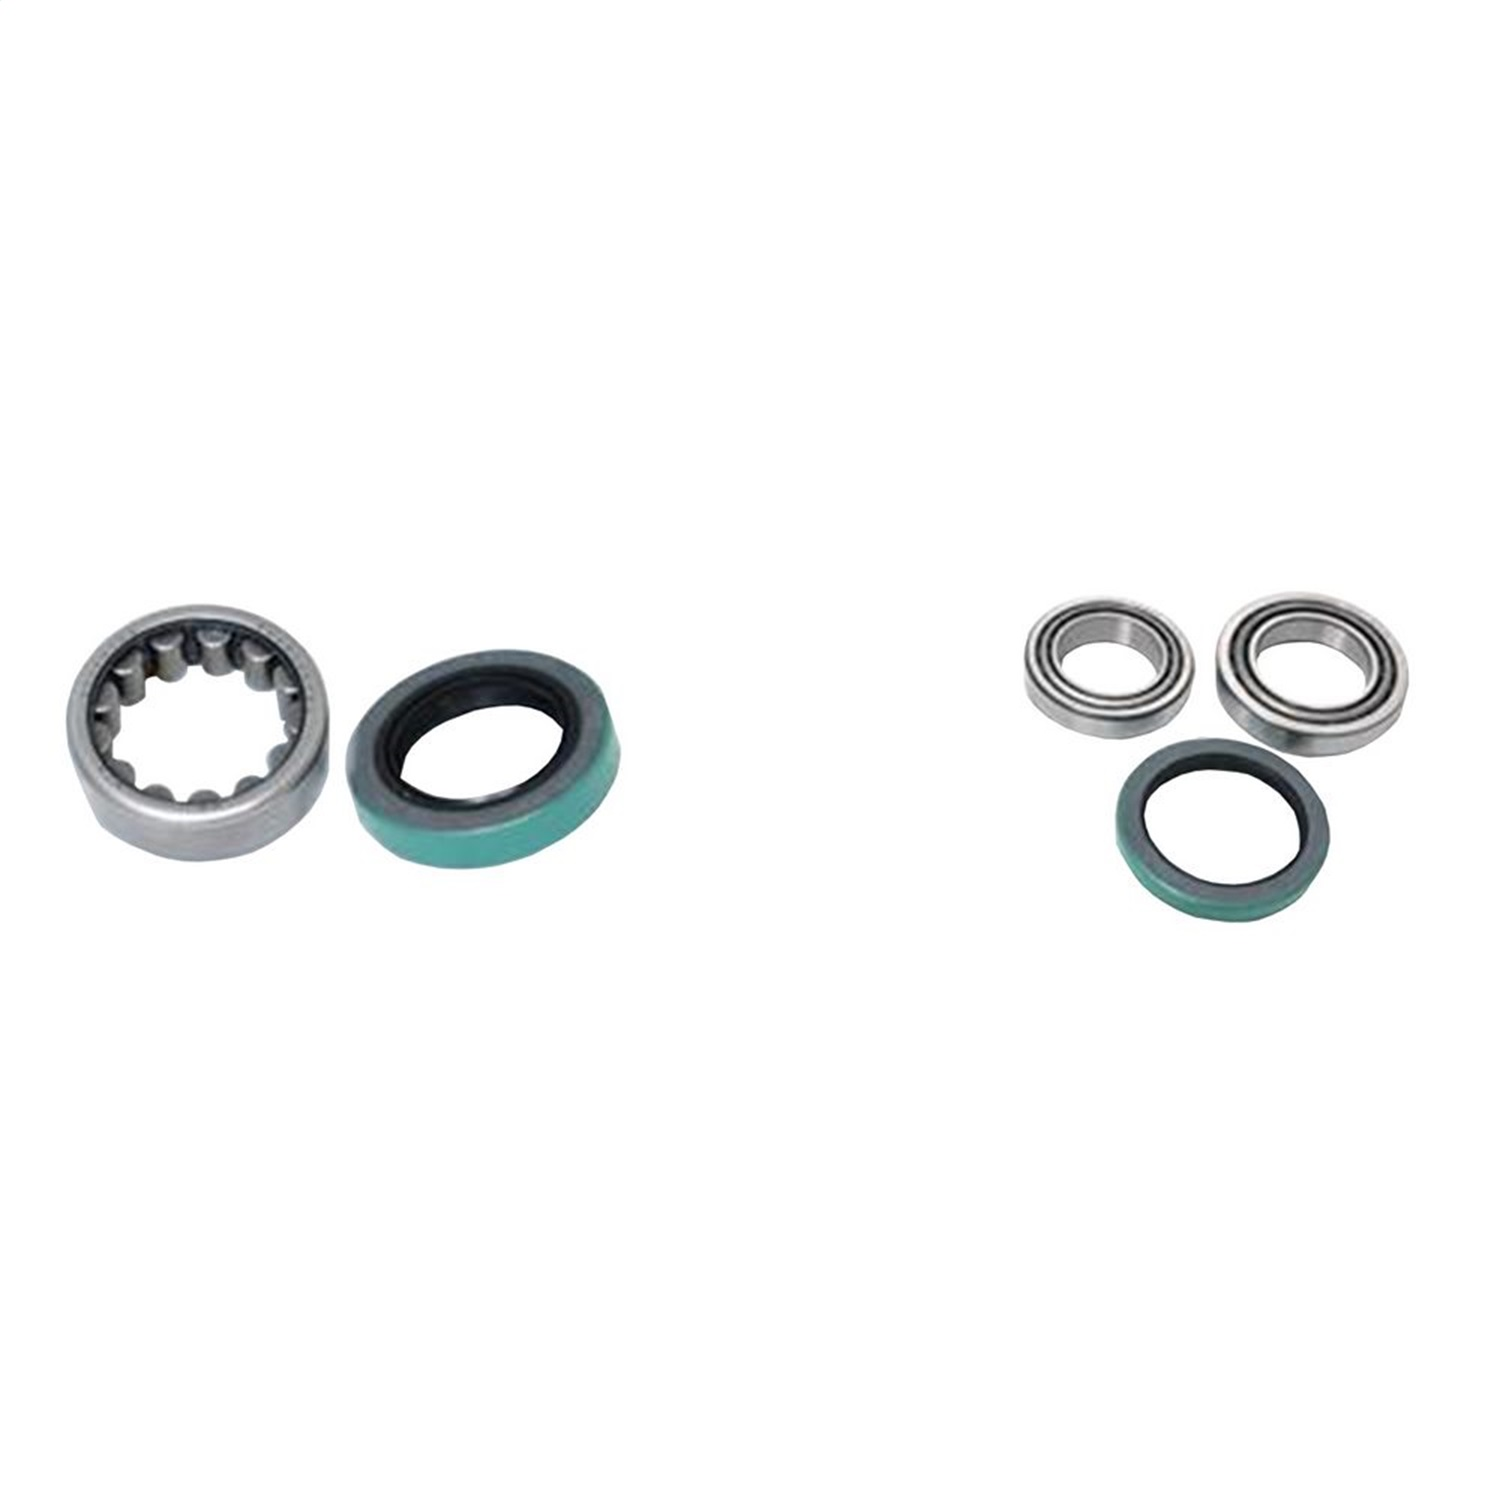 G2 Axle and Gear 30-9002 Wheel Bearing Kit